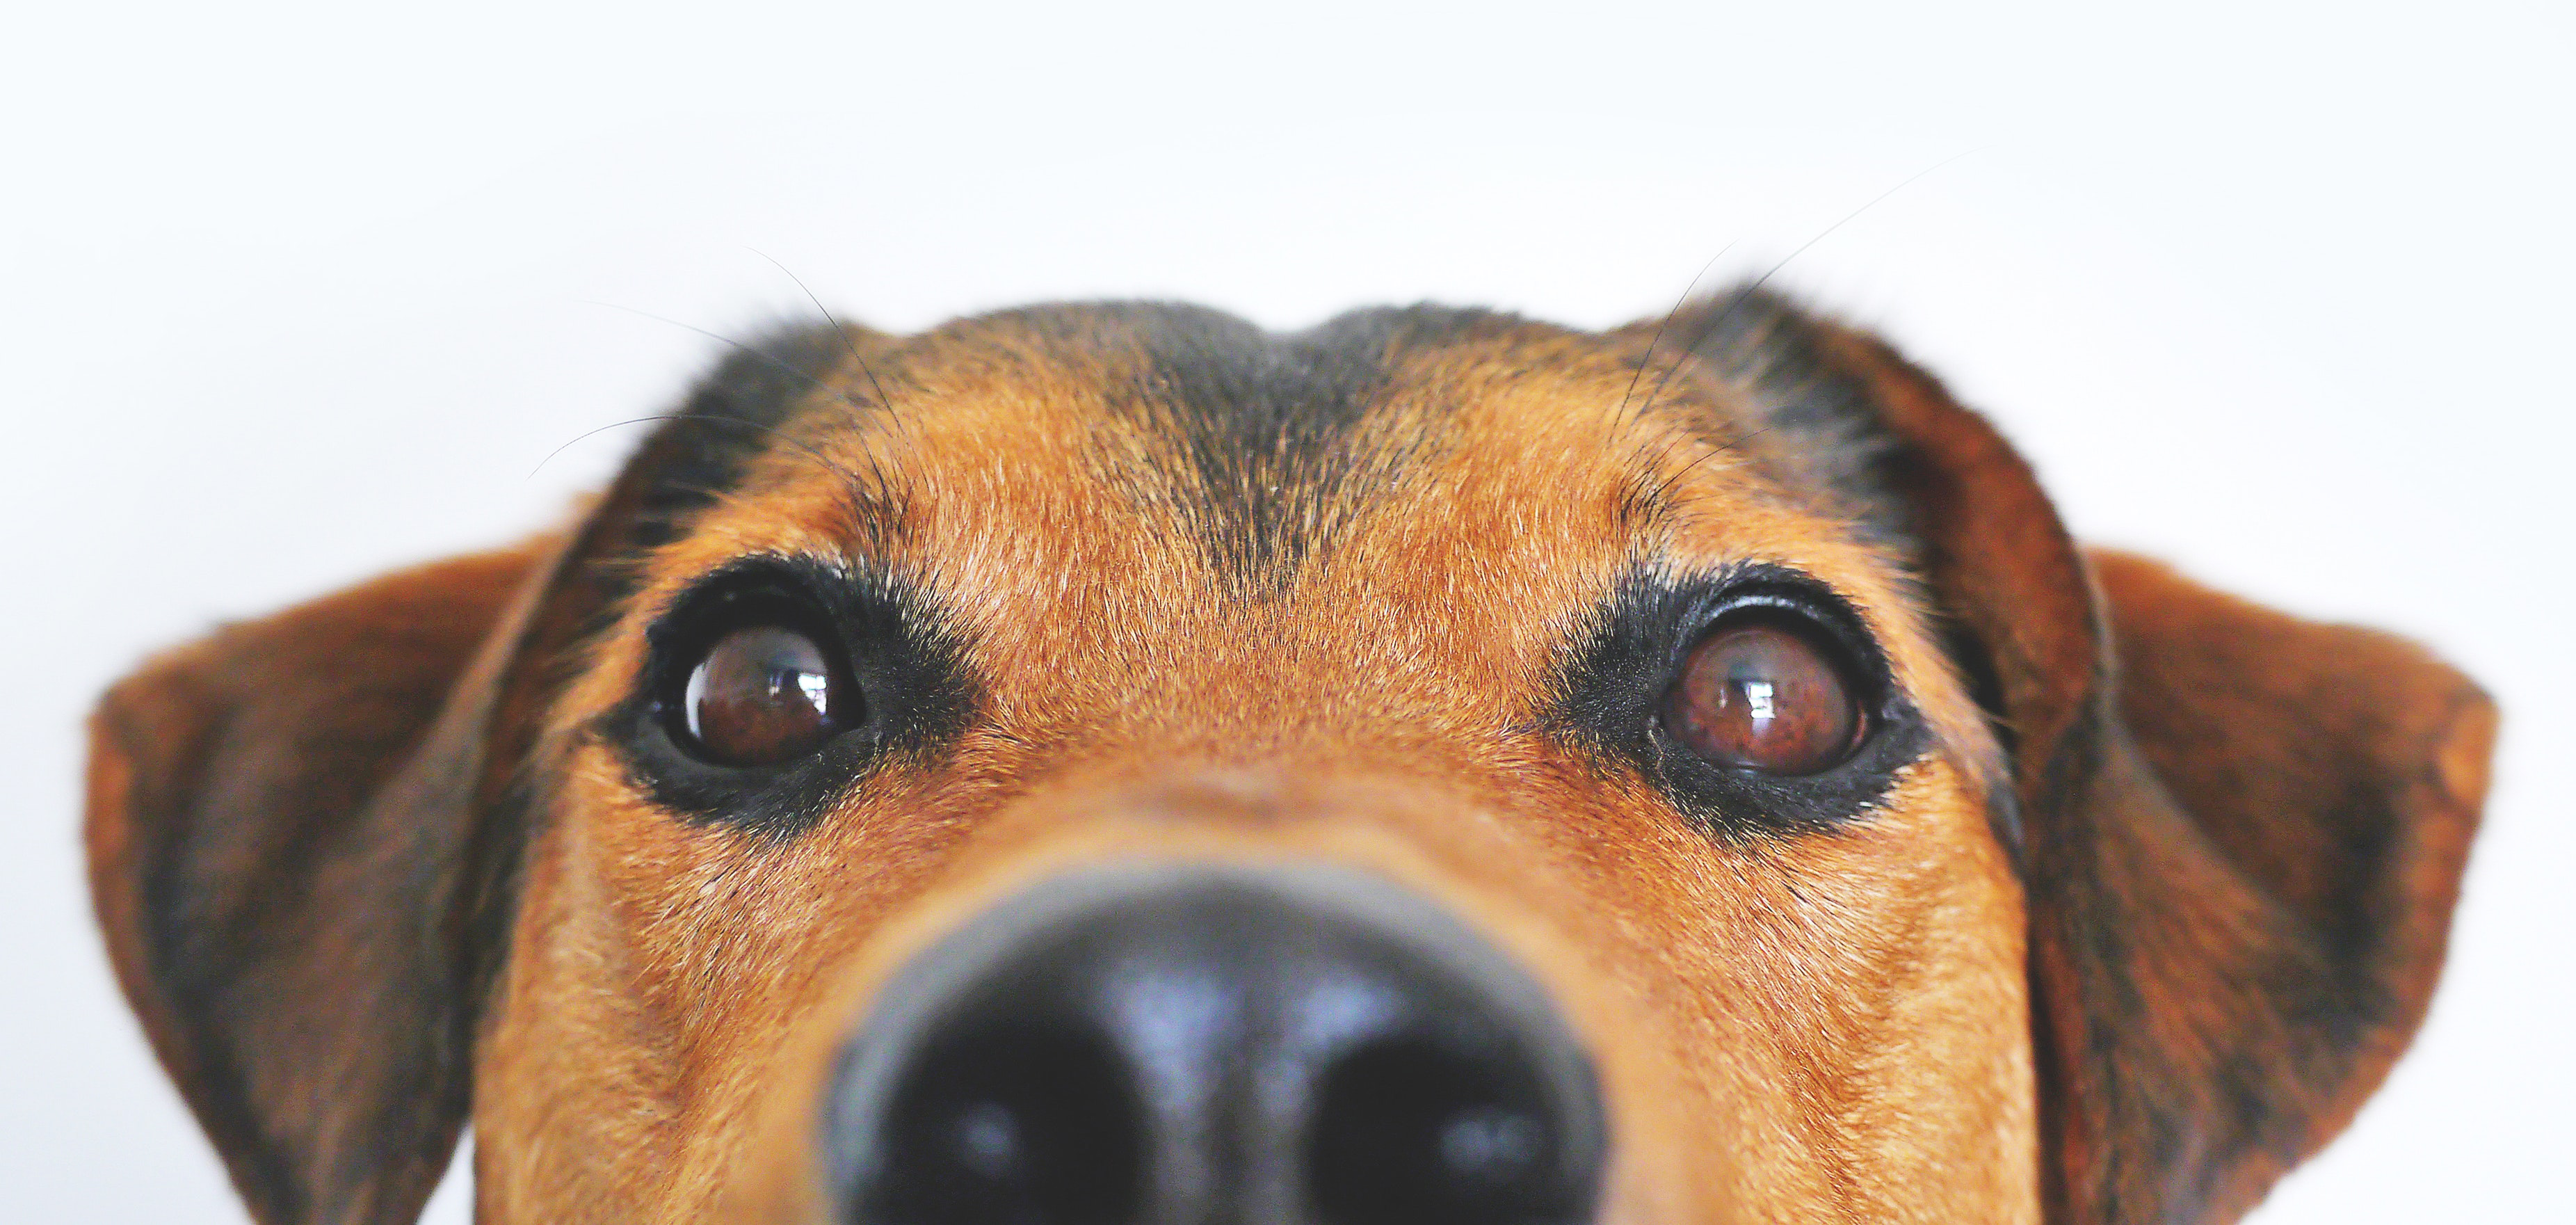 Close up photo of brown dog peeking out of screen